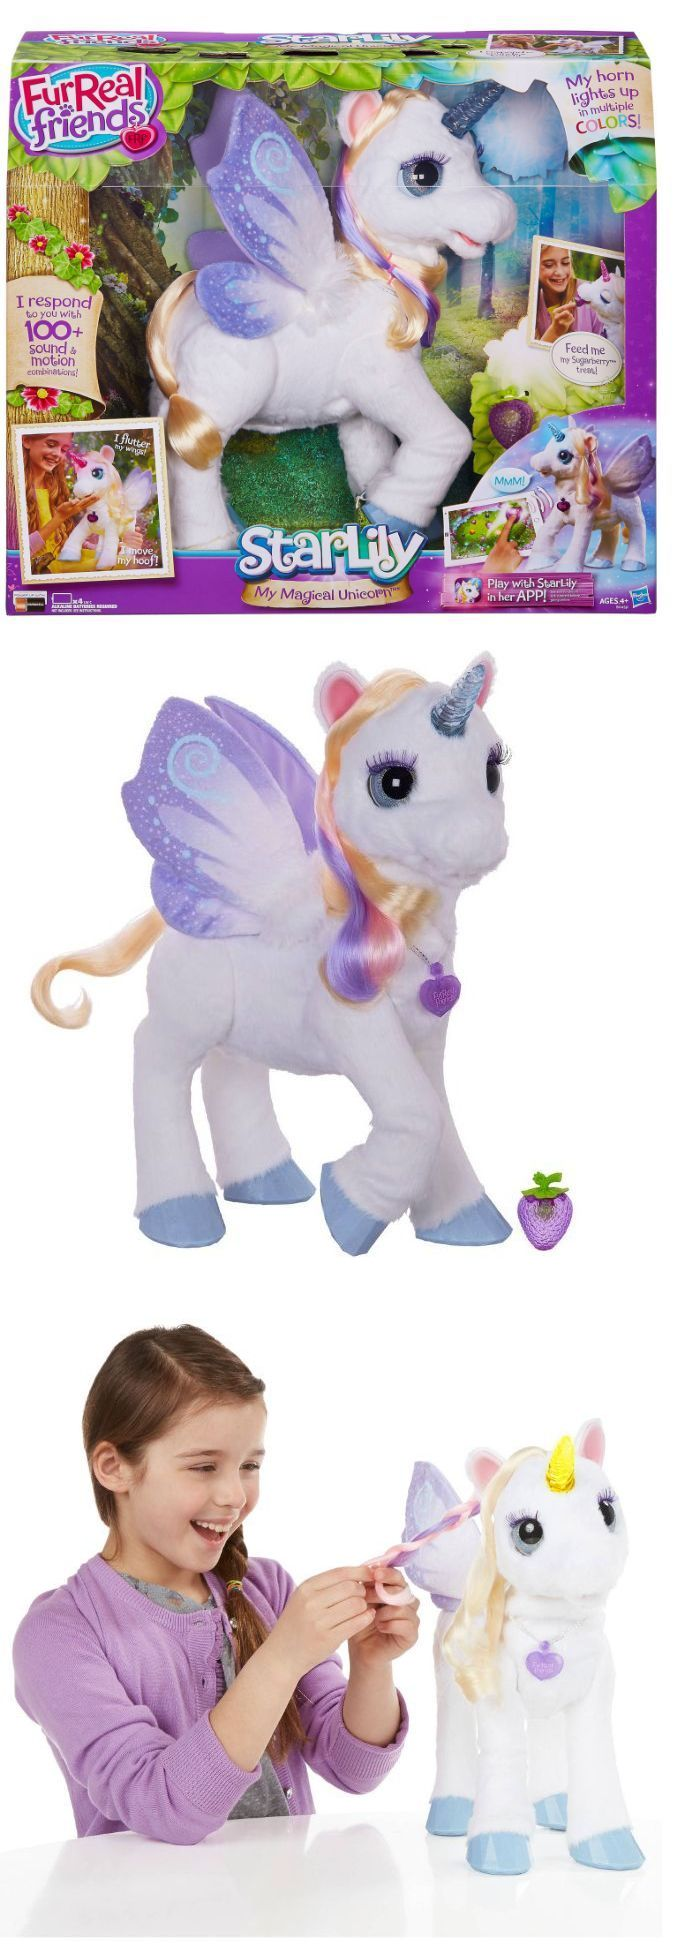 FurReal Friends 38288: Furreal Friends Pony Toys For Girls Age 3 4 5 6 7 Starlily My Magical Unicorn -> BUY IT NOW ONLY: $109.99 on eBay!